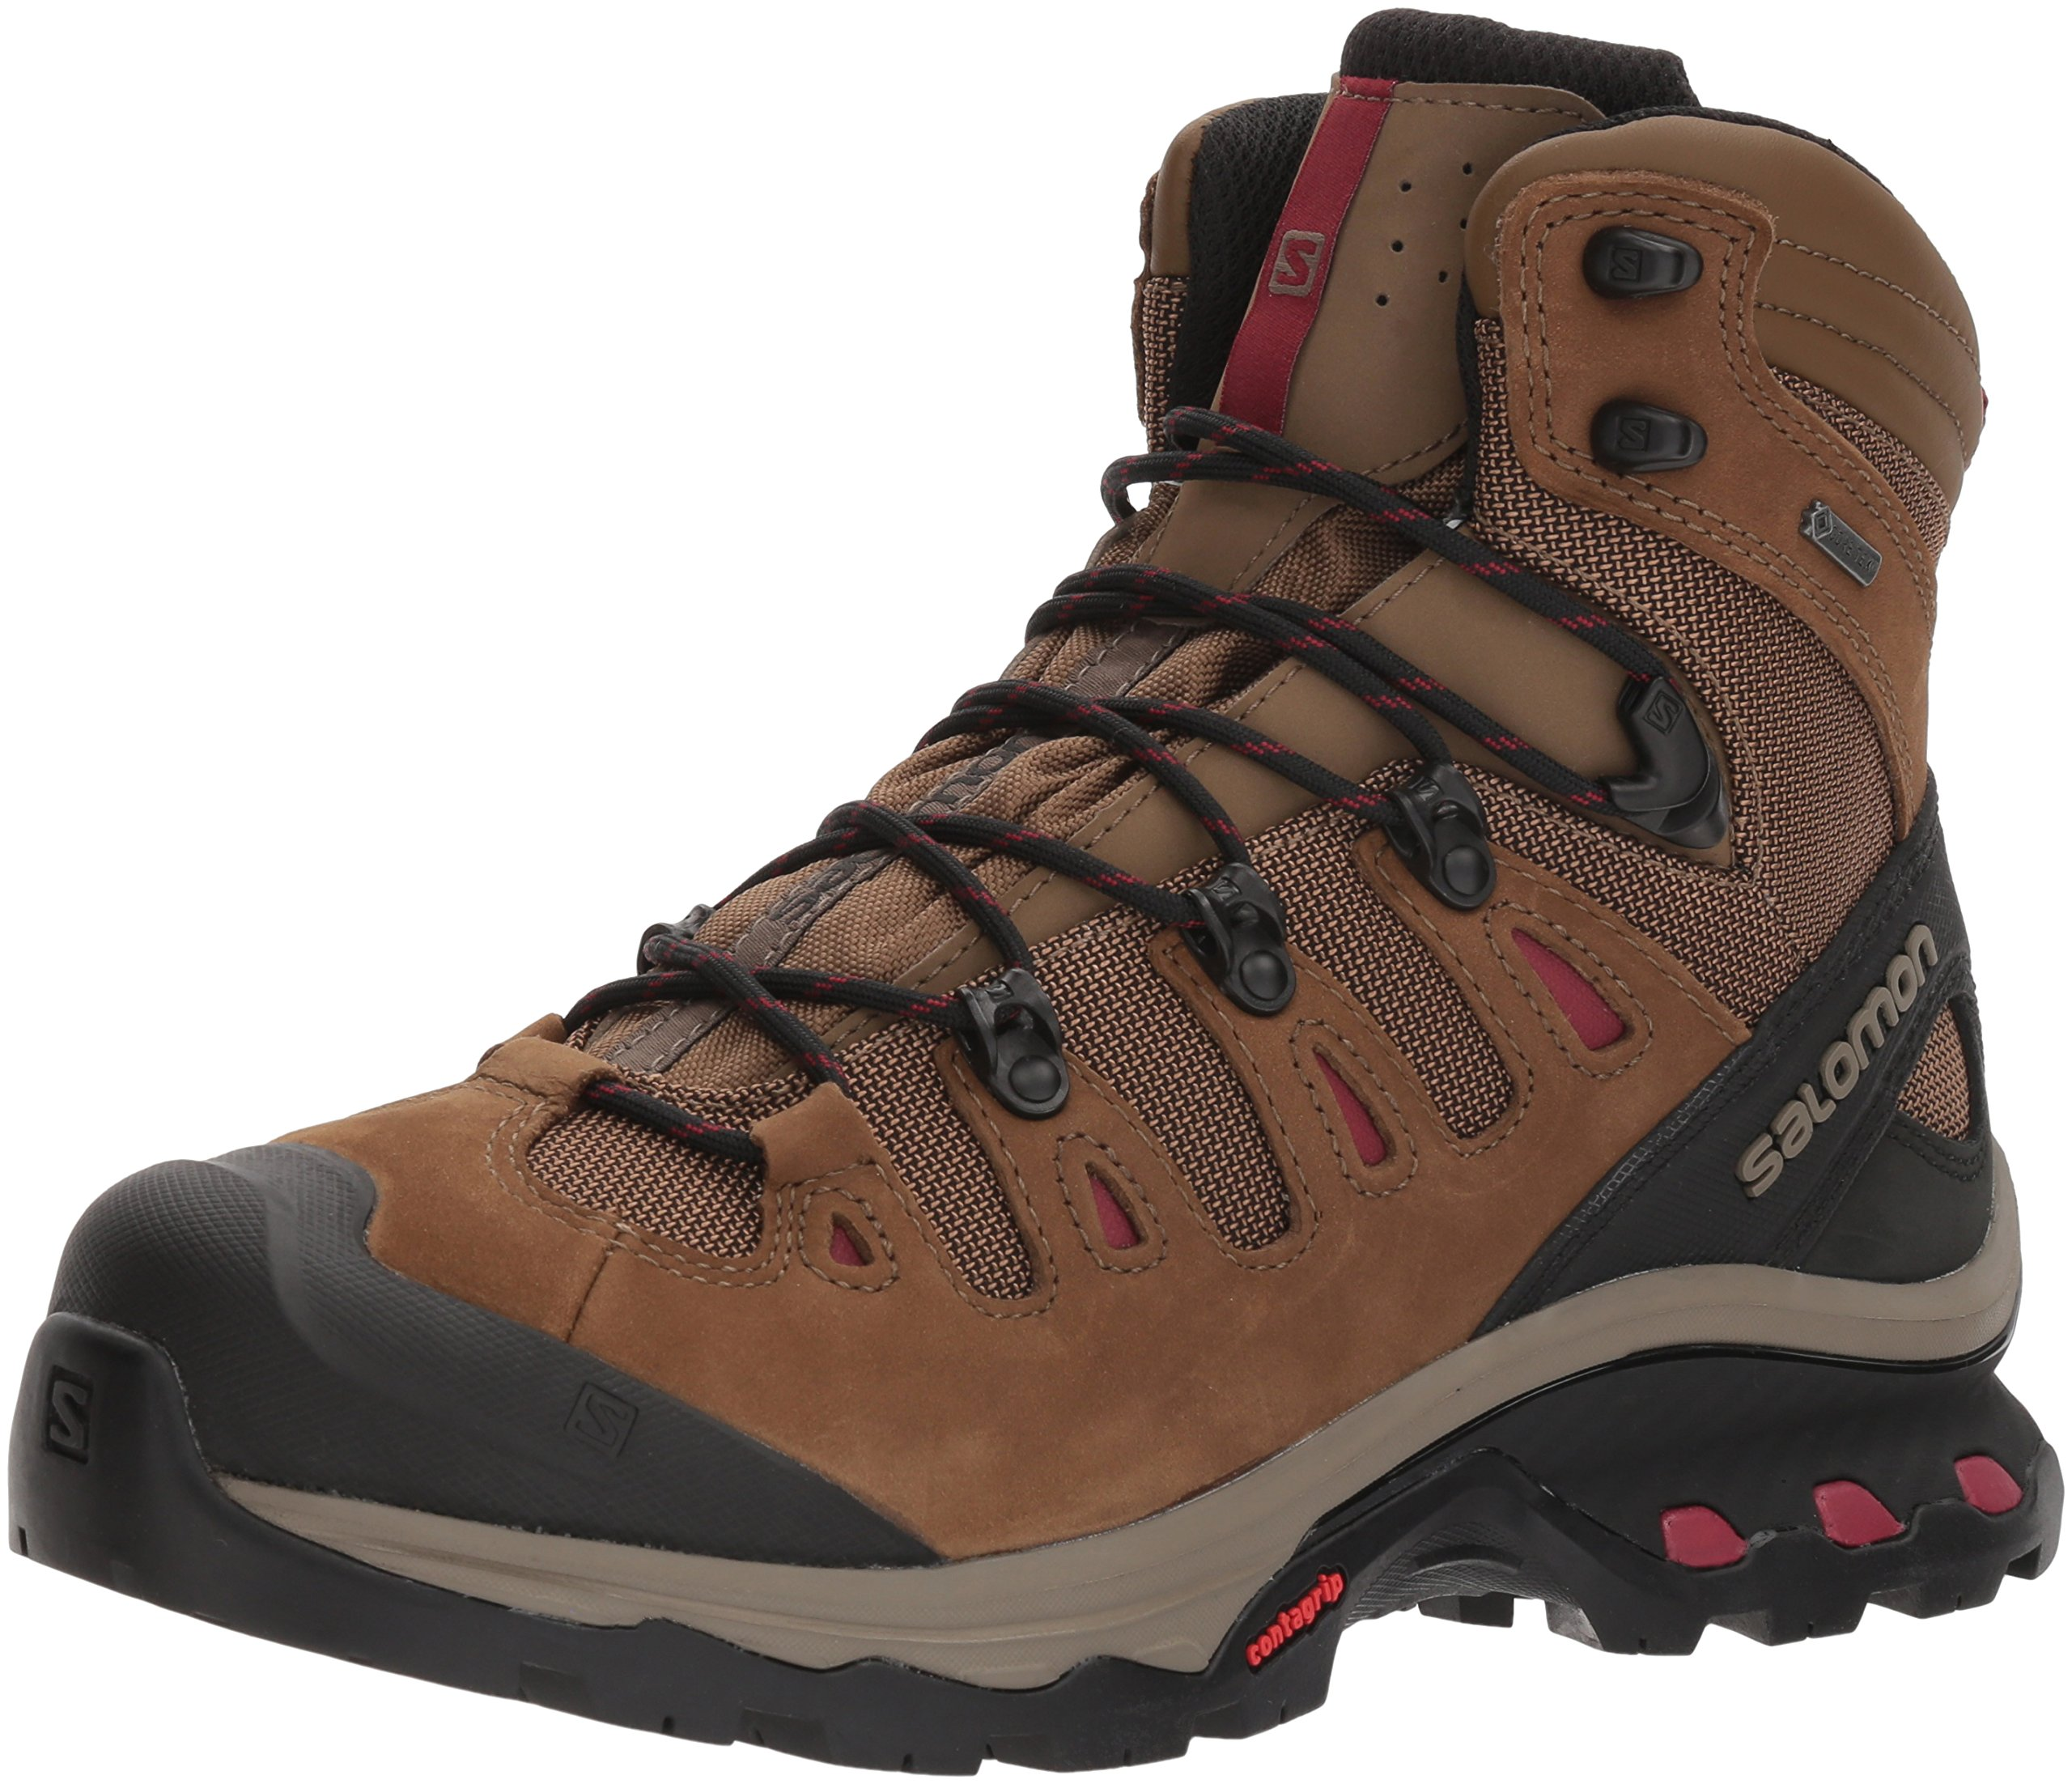 Salomon Women's Quest 4D 3 Gtx W Backpacking Boots, Teak, 5 B US